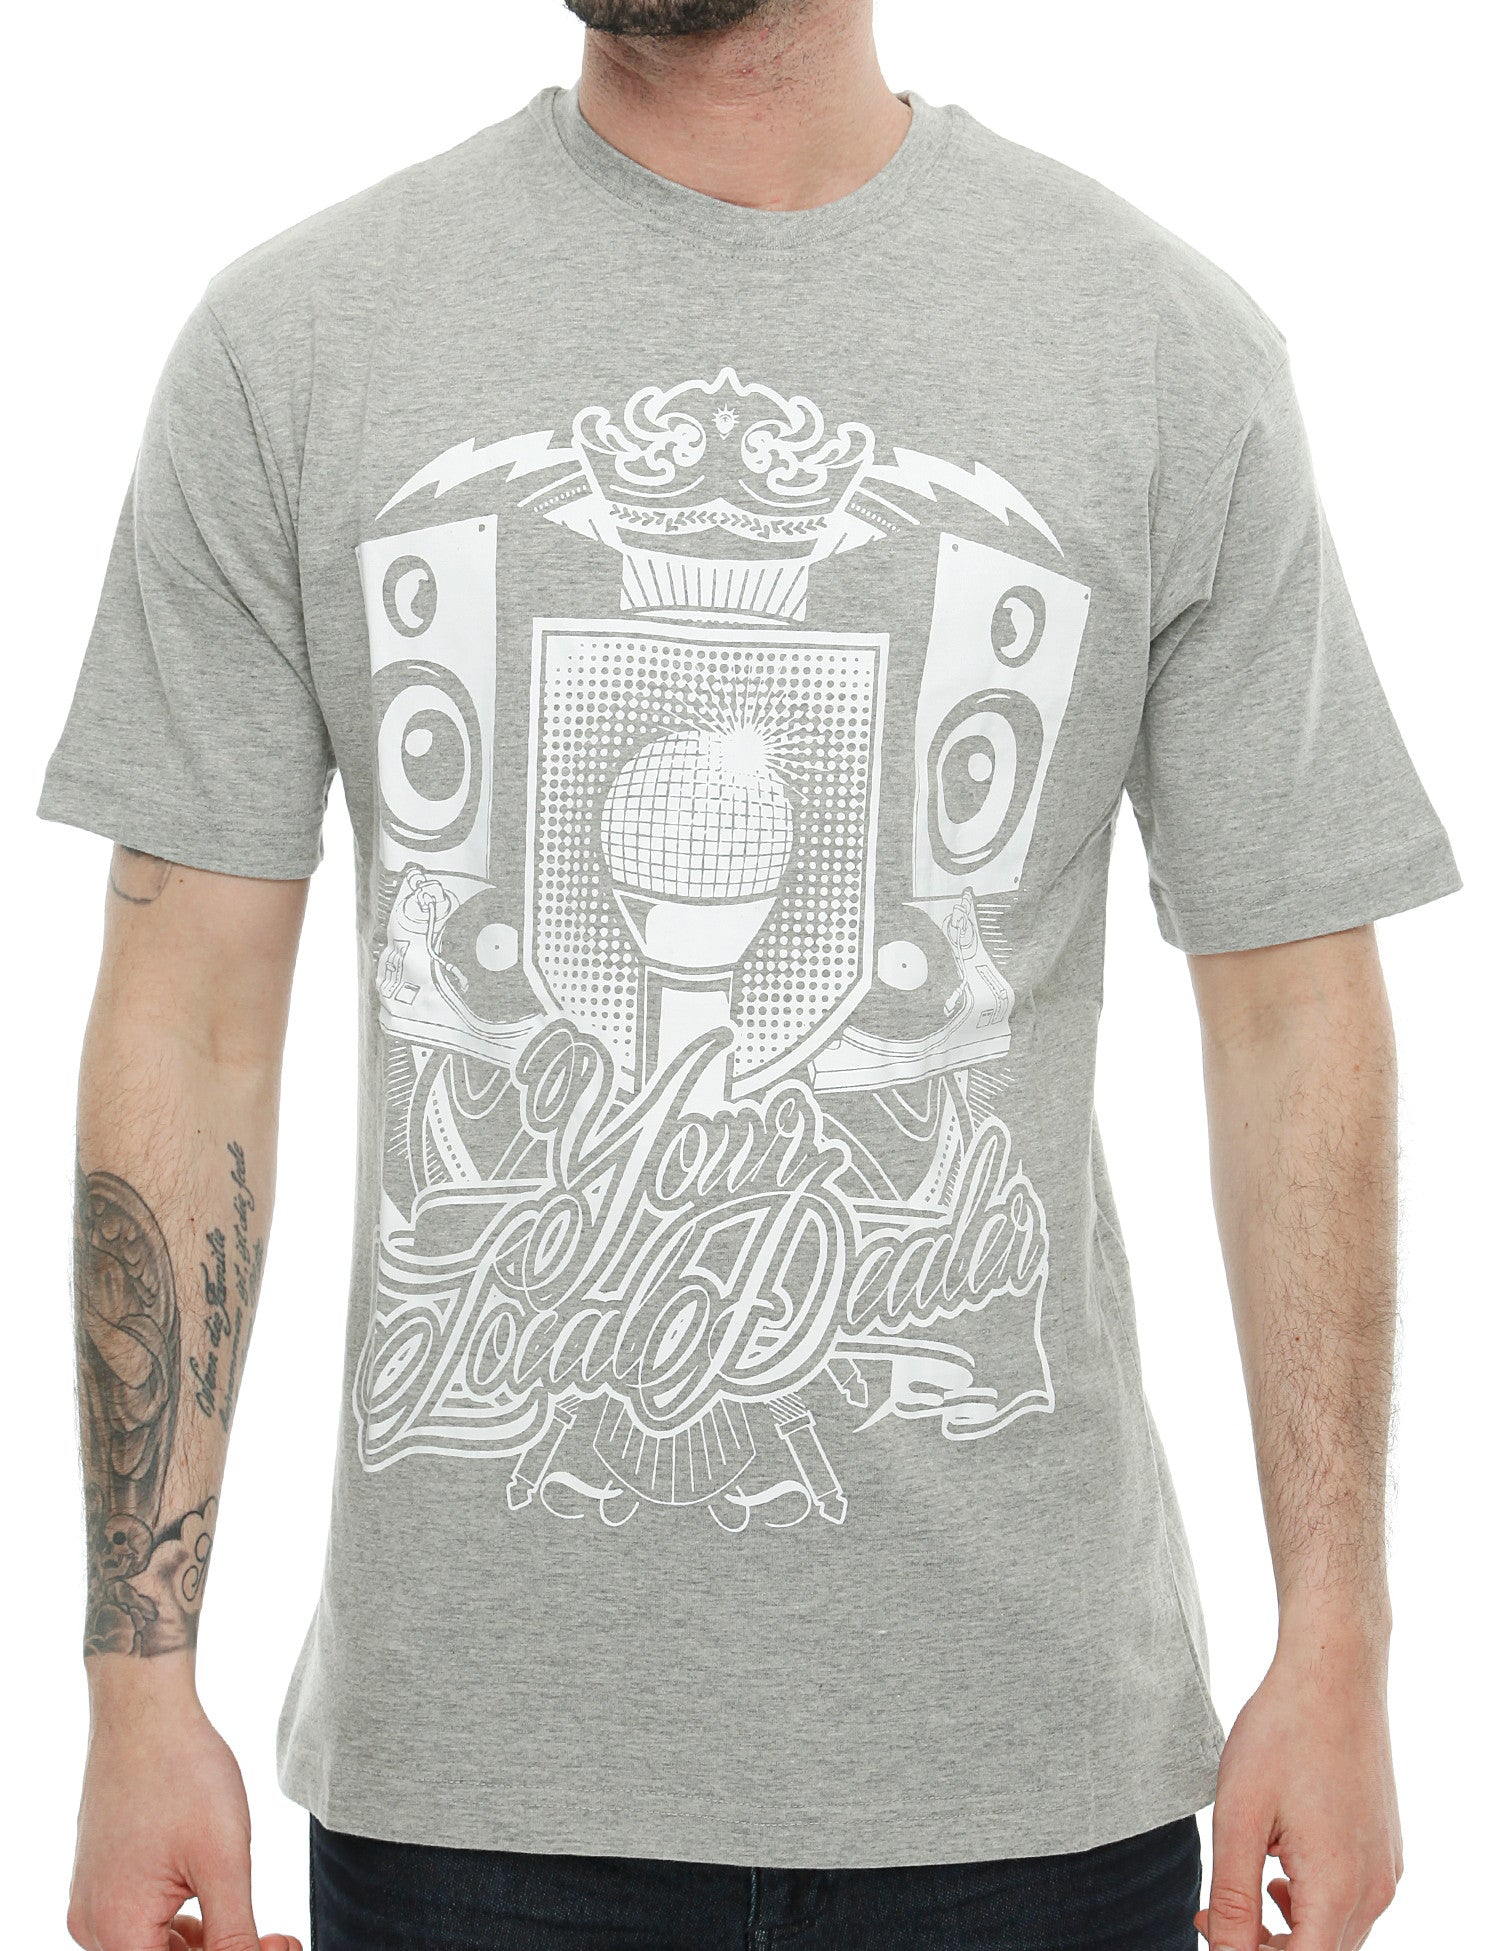 YLD Soundbox T-Shirt YLD16-004  Grey